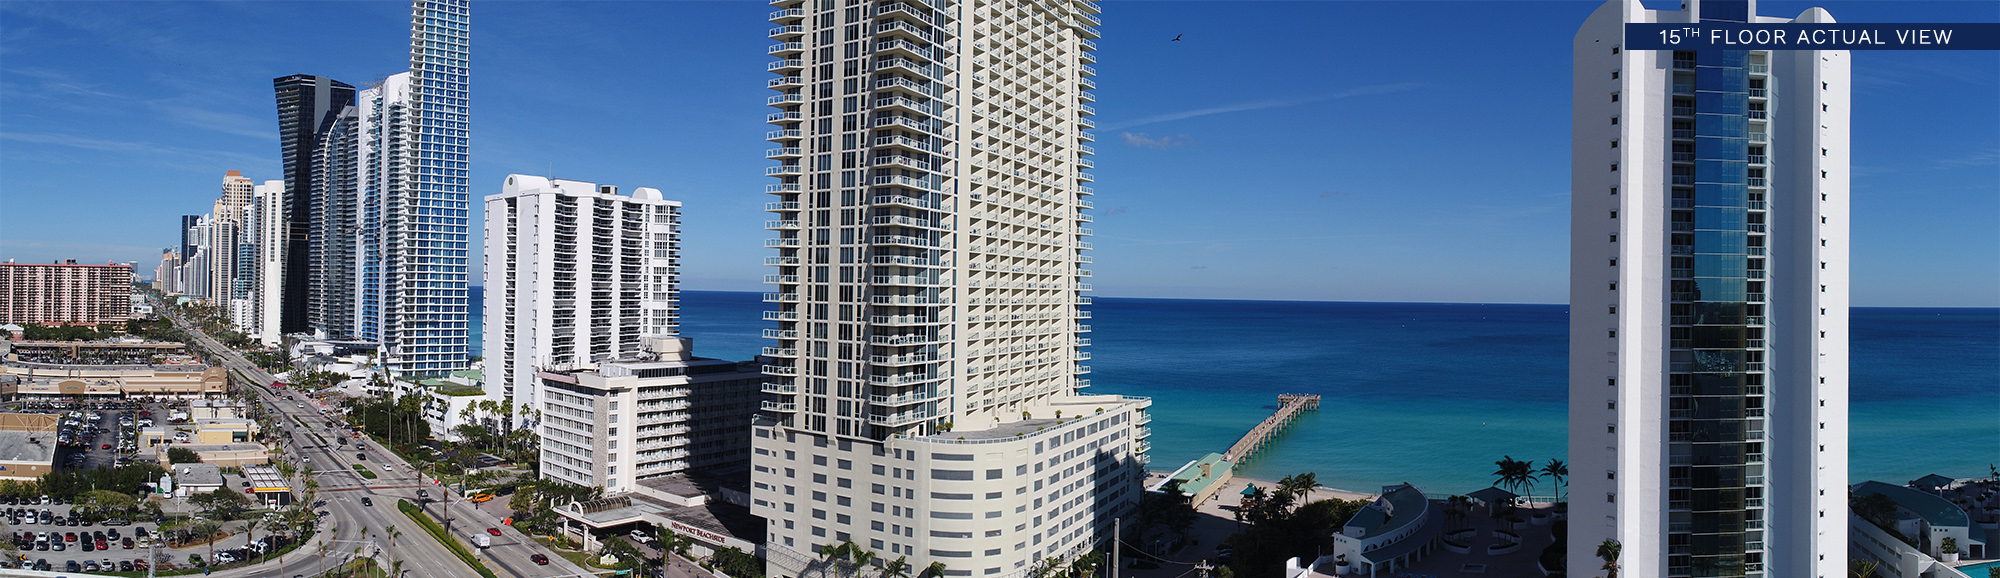 Panoramic view of sunny isles beach at floor 15th of Milton Tower